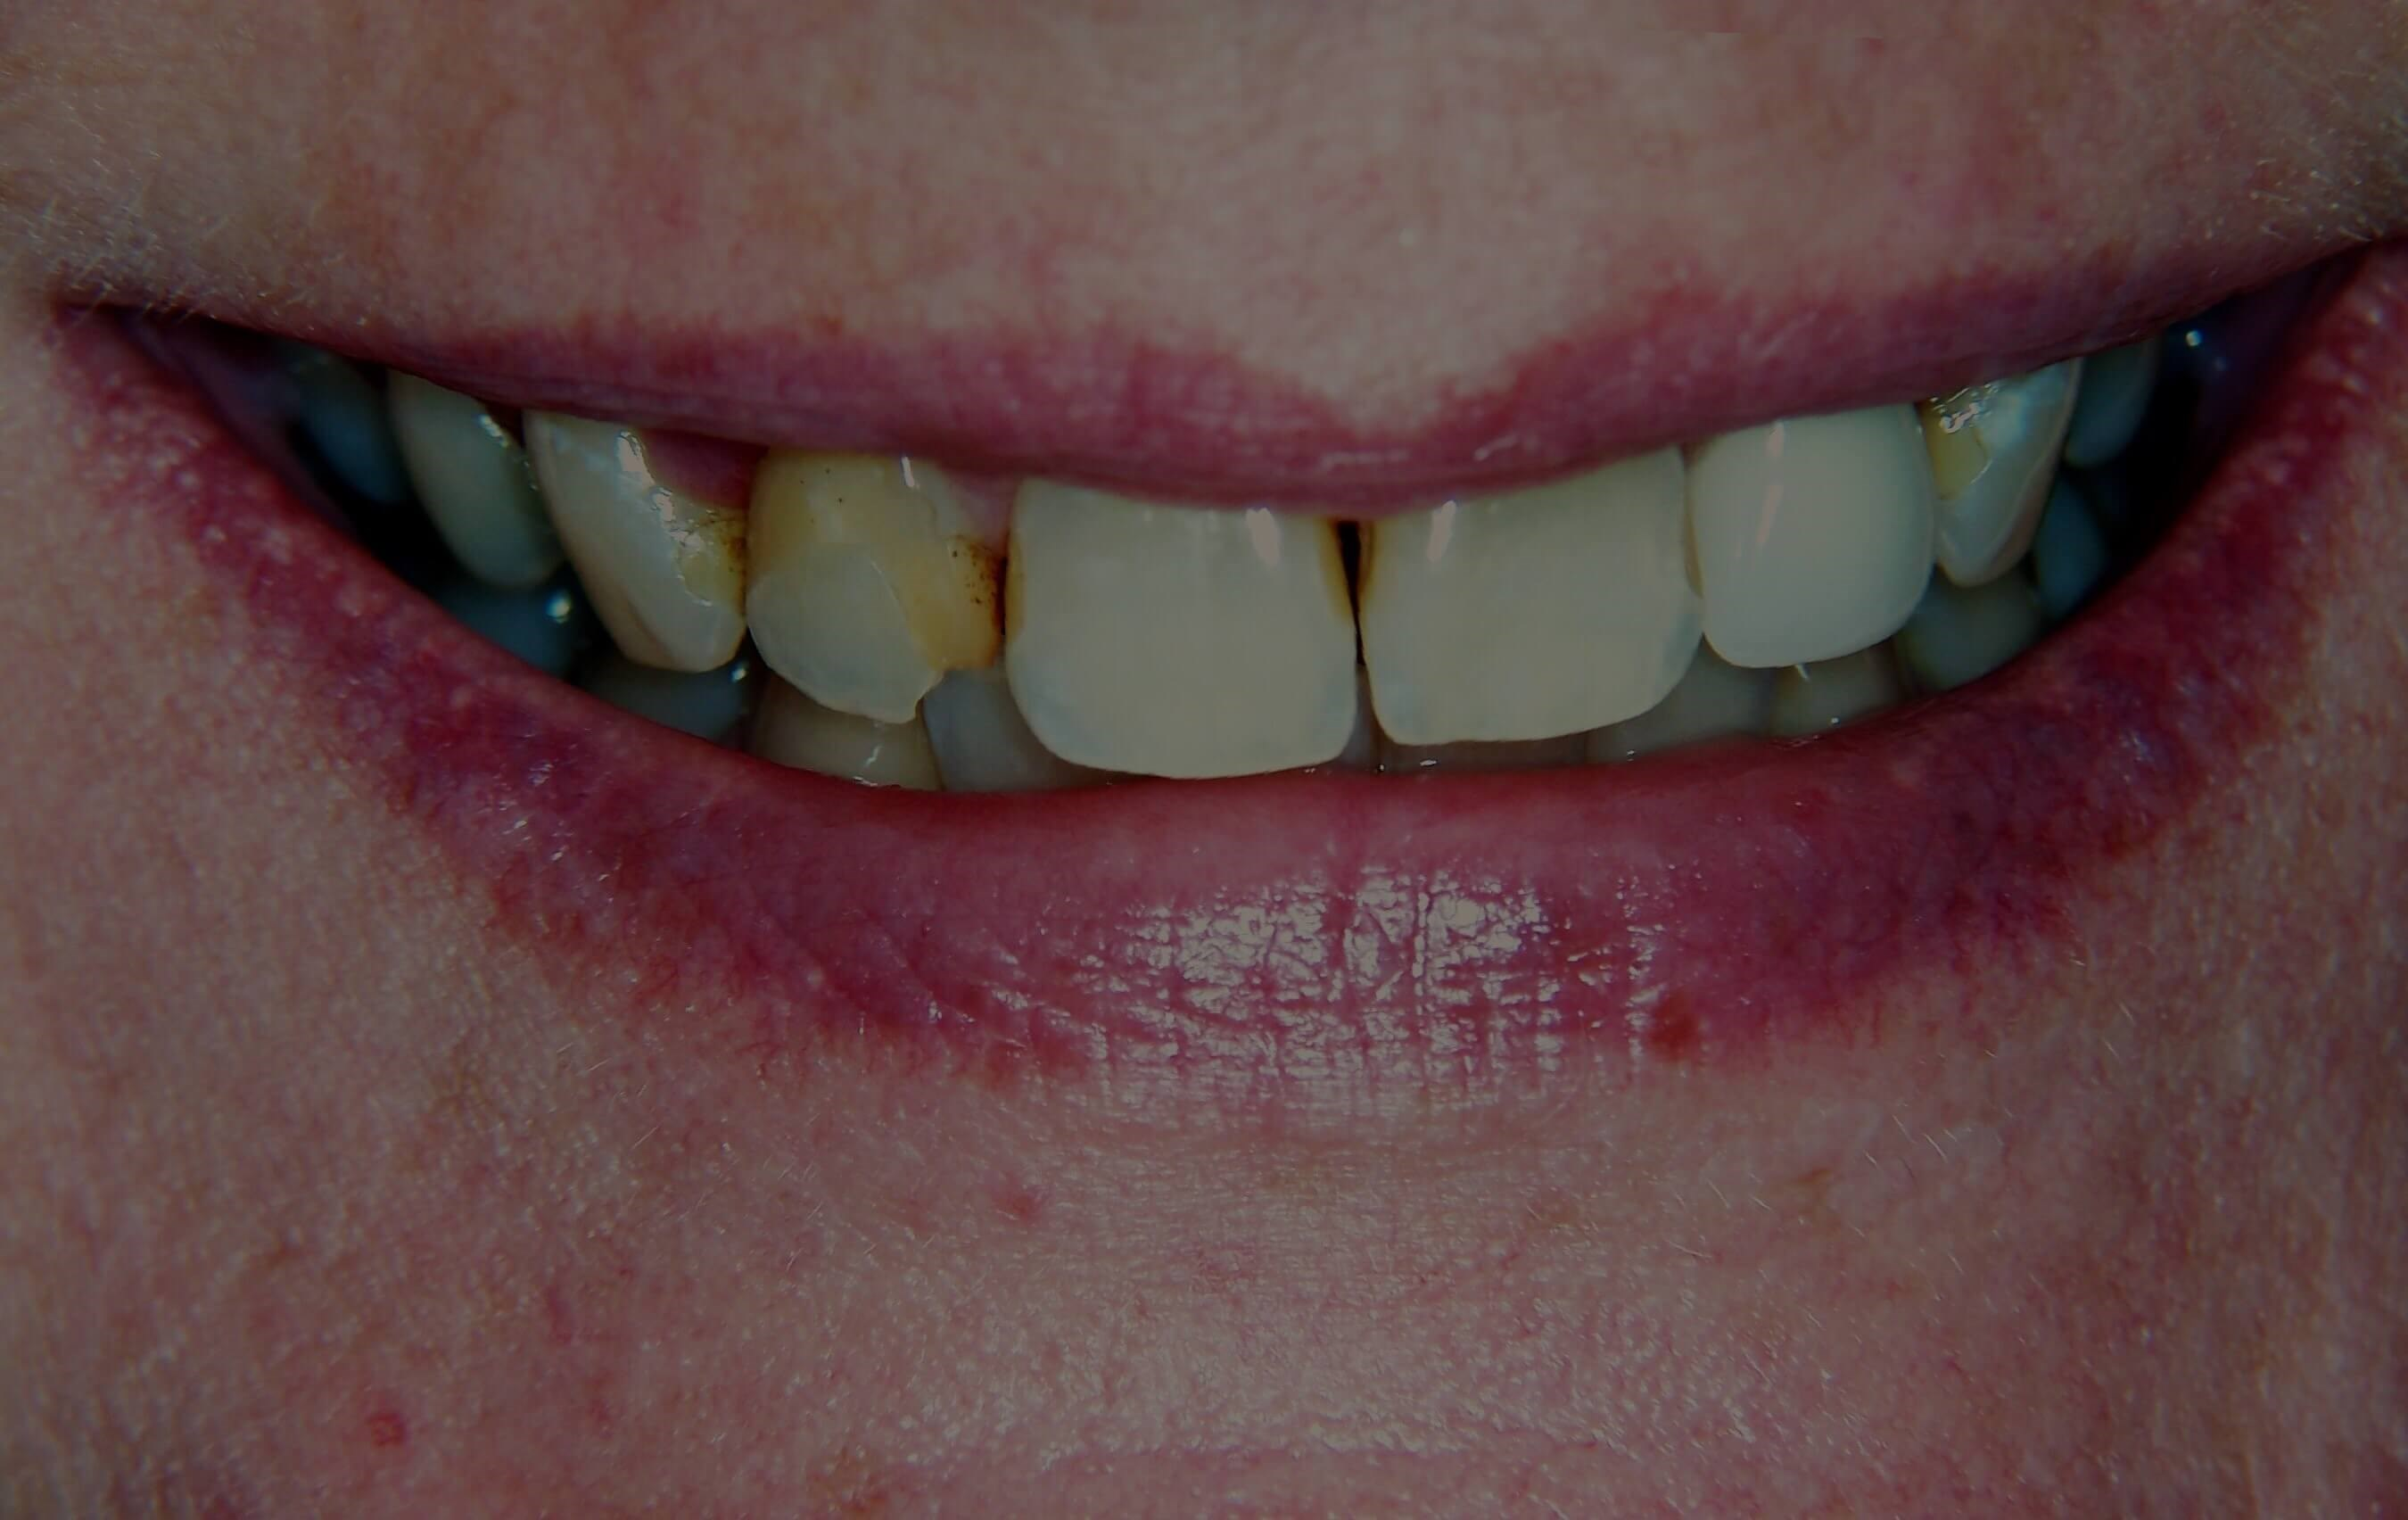 Dental Crowns and Veneers Before